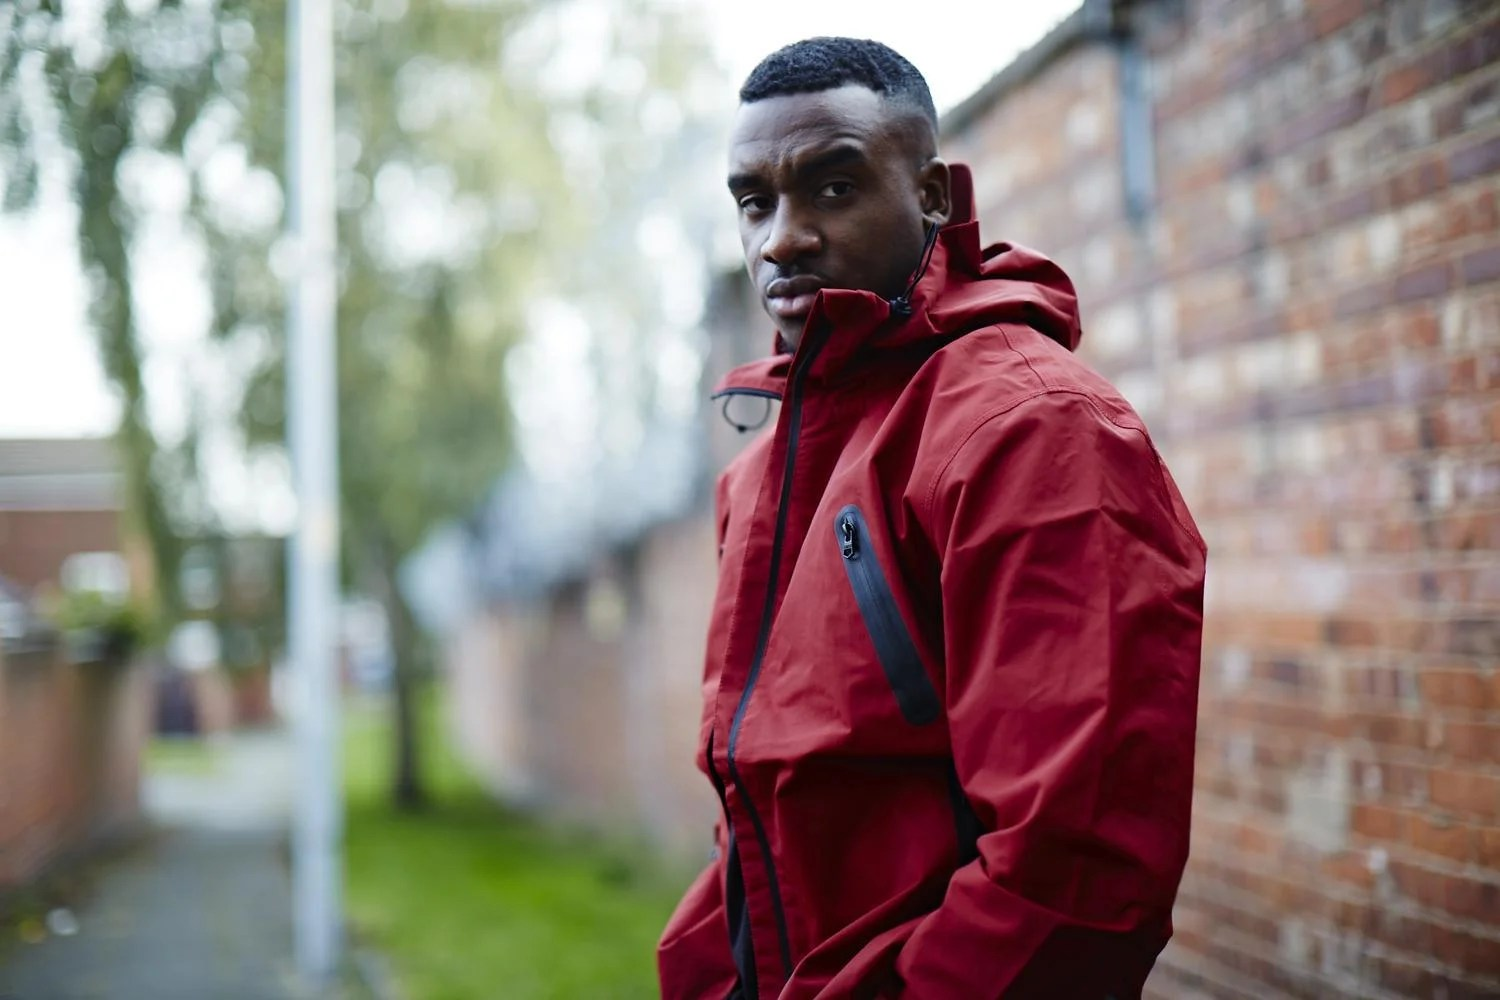 Wallpaper Tennis Girl Bugzy Malone Interview The Way I Am It S Built Into Me